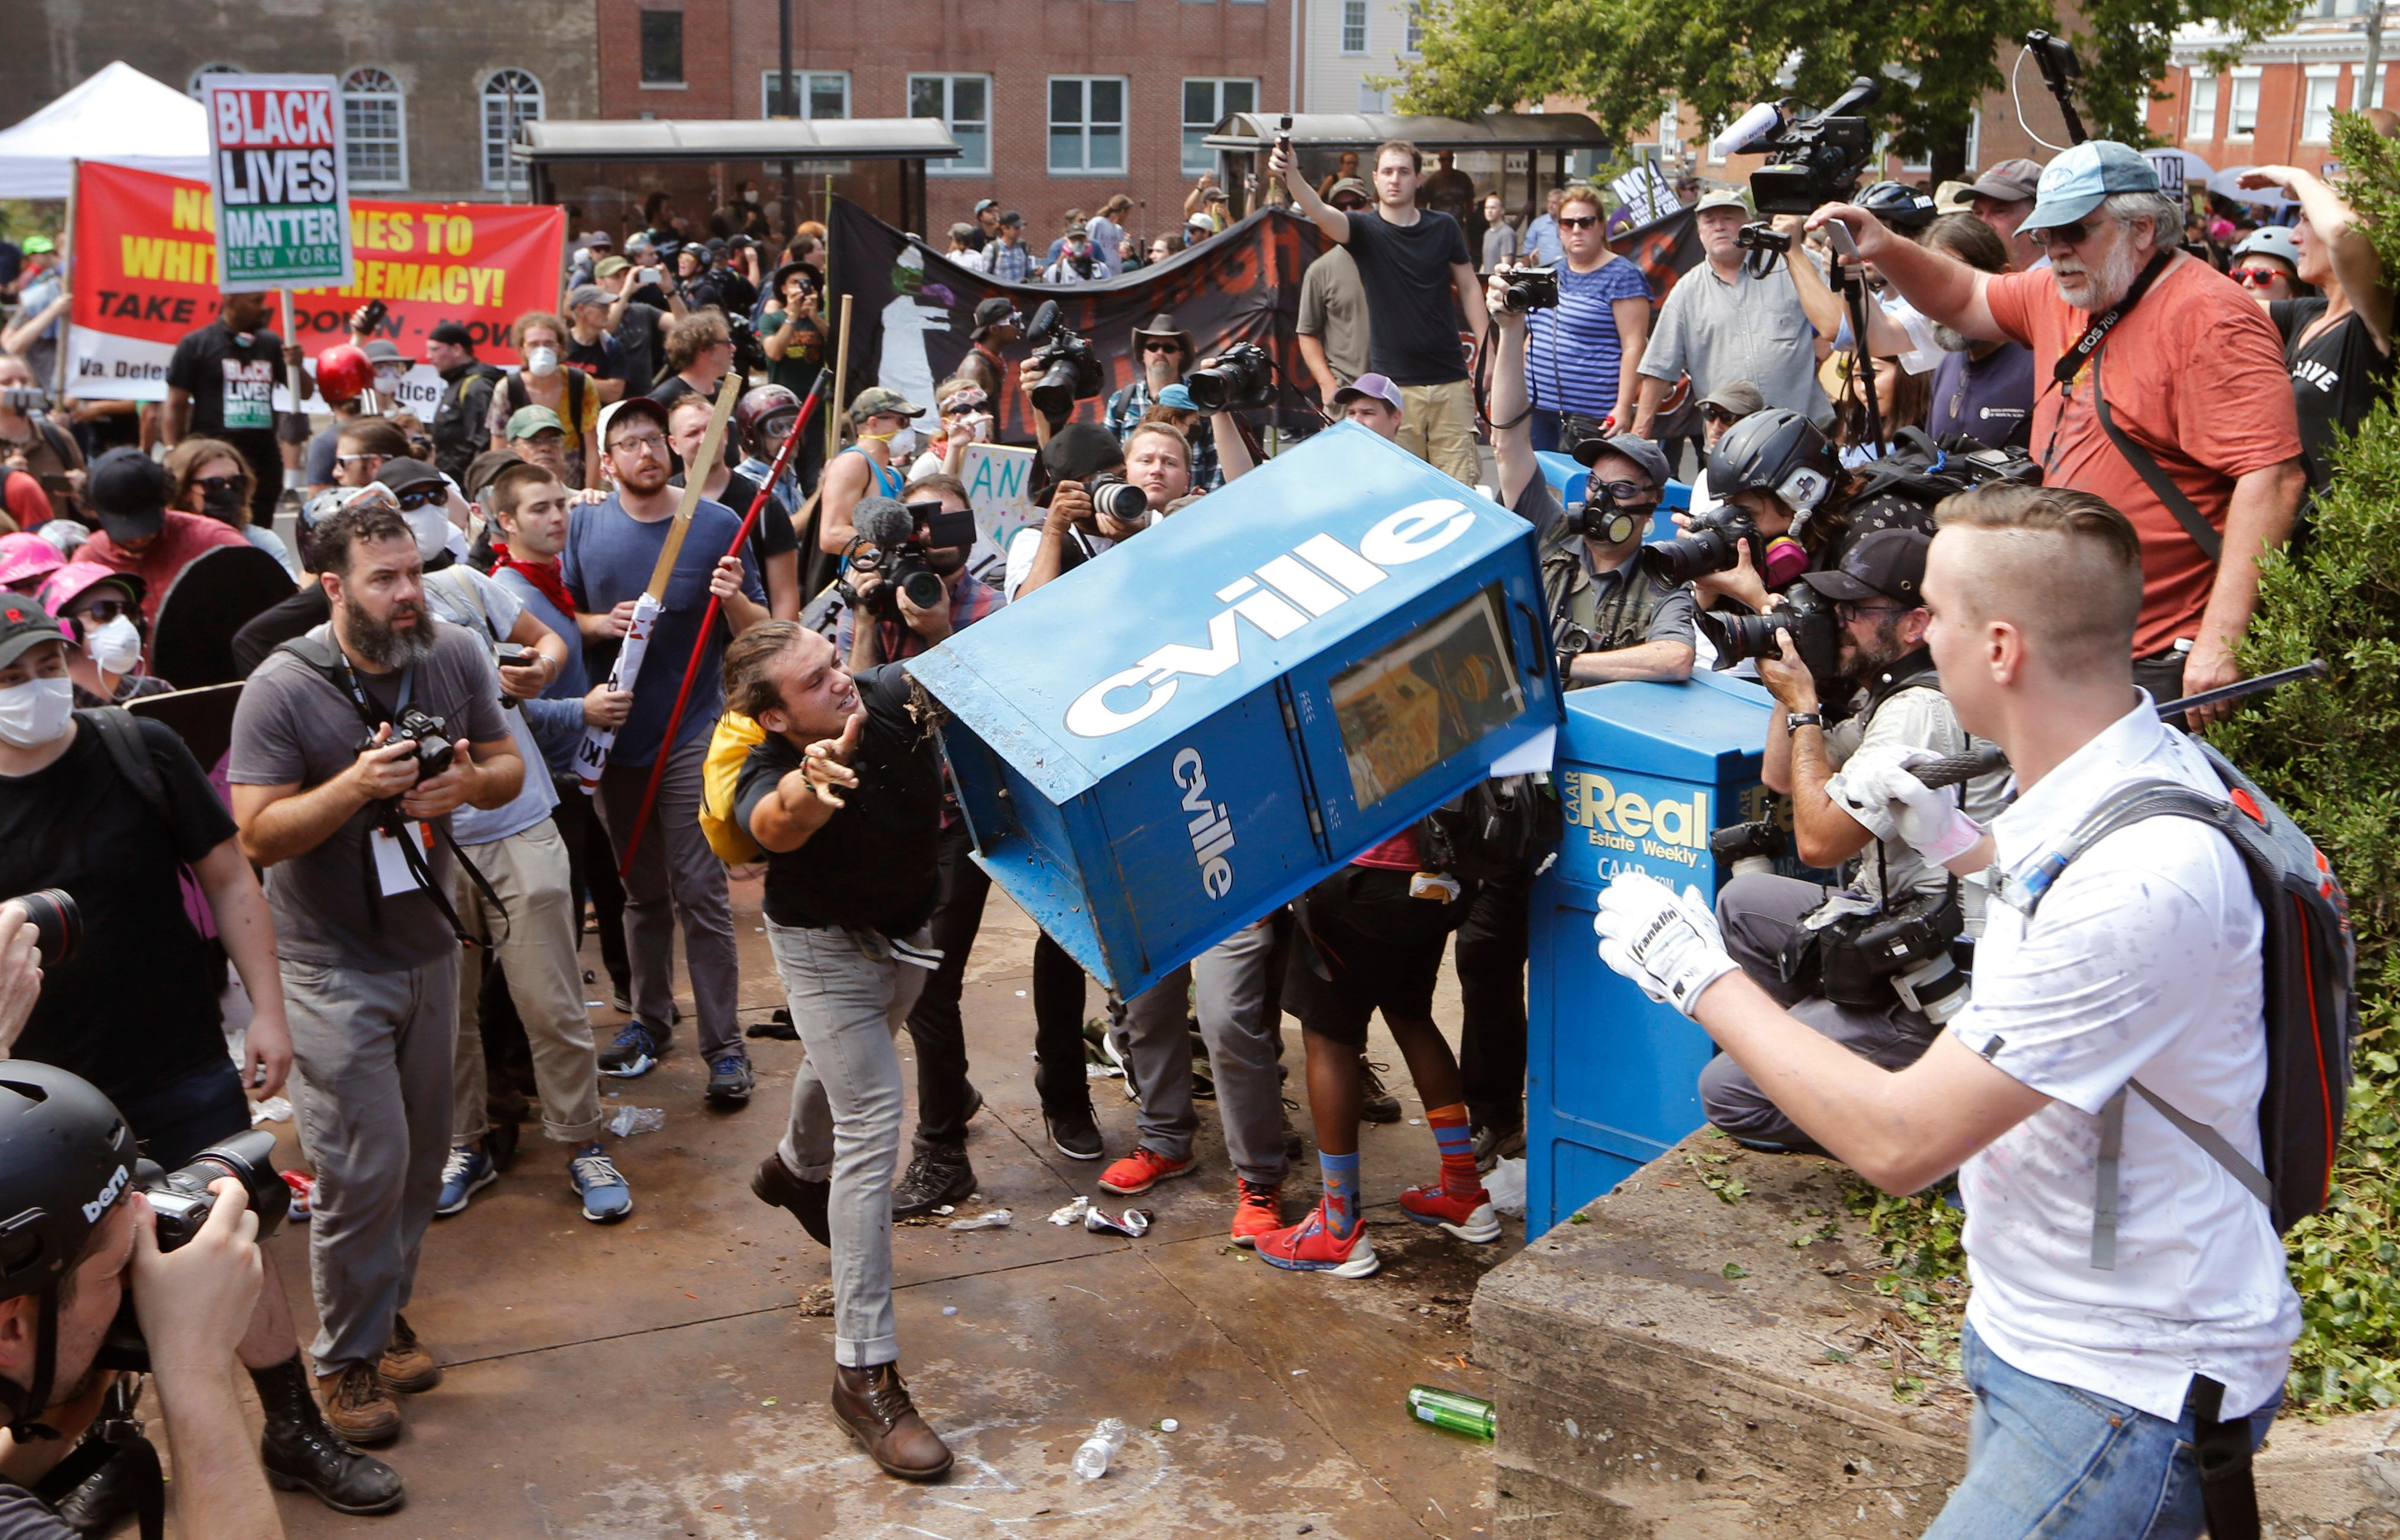 White nationalist demonstrators clash with a counter demonstrator  as he throws a newspaper box at the entrance to Lee Park in Charlottesville, Va., Saturday, Aug. 12, 2017. Gov. Terry McAuliffe declared a state of emergency and police dressed in riot gear ordered people to disperse after chaotic violent clashes between white nationalists and counter protestors. (AP Photo/Steve Helber) (AP Photo/Steve Helber)